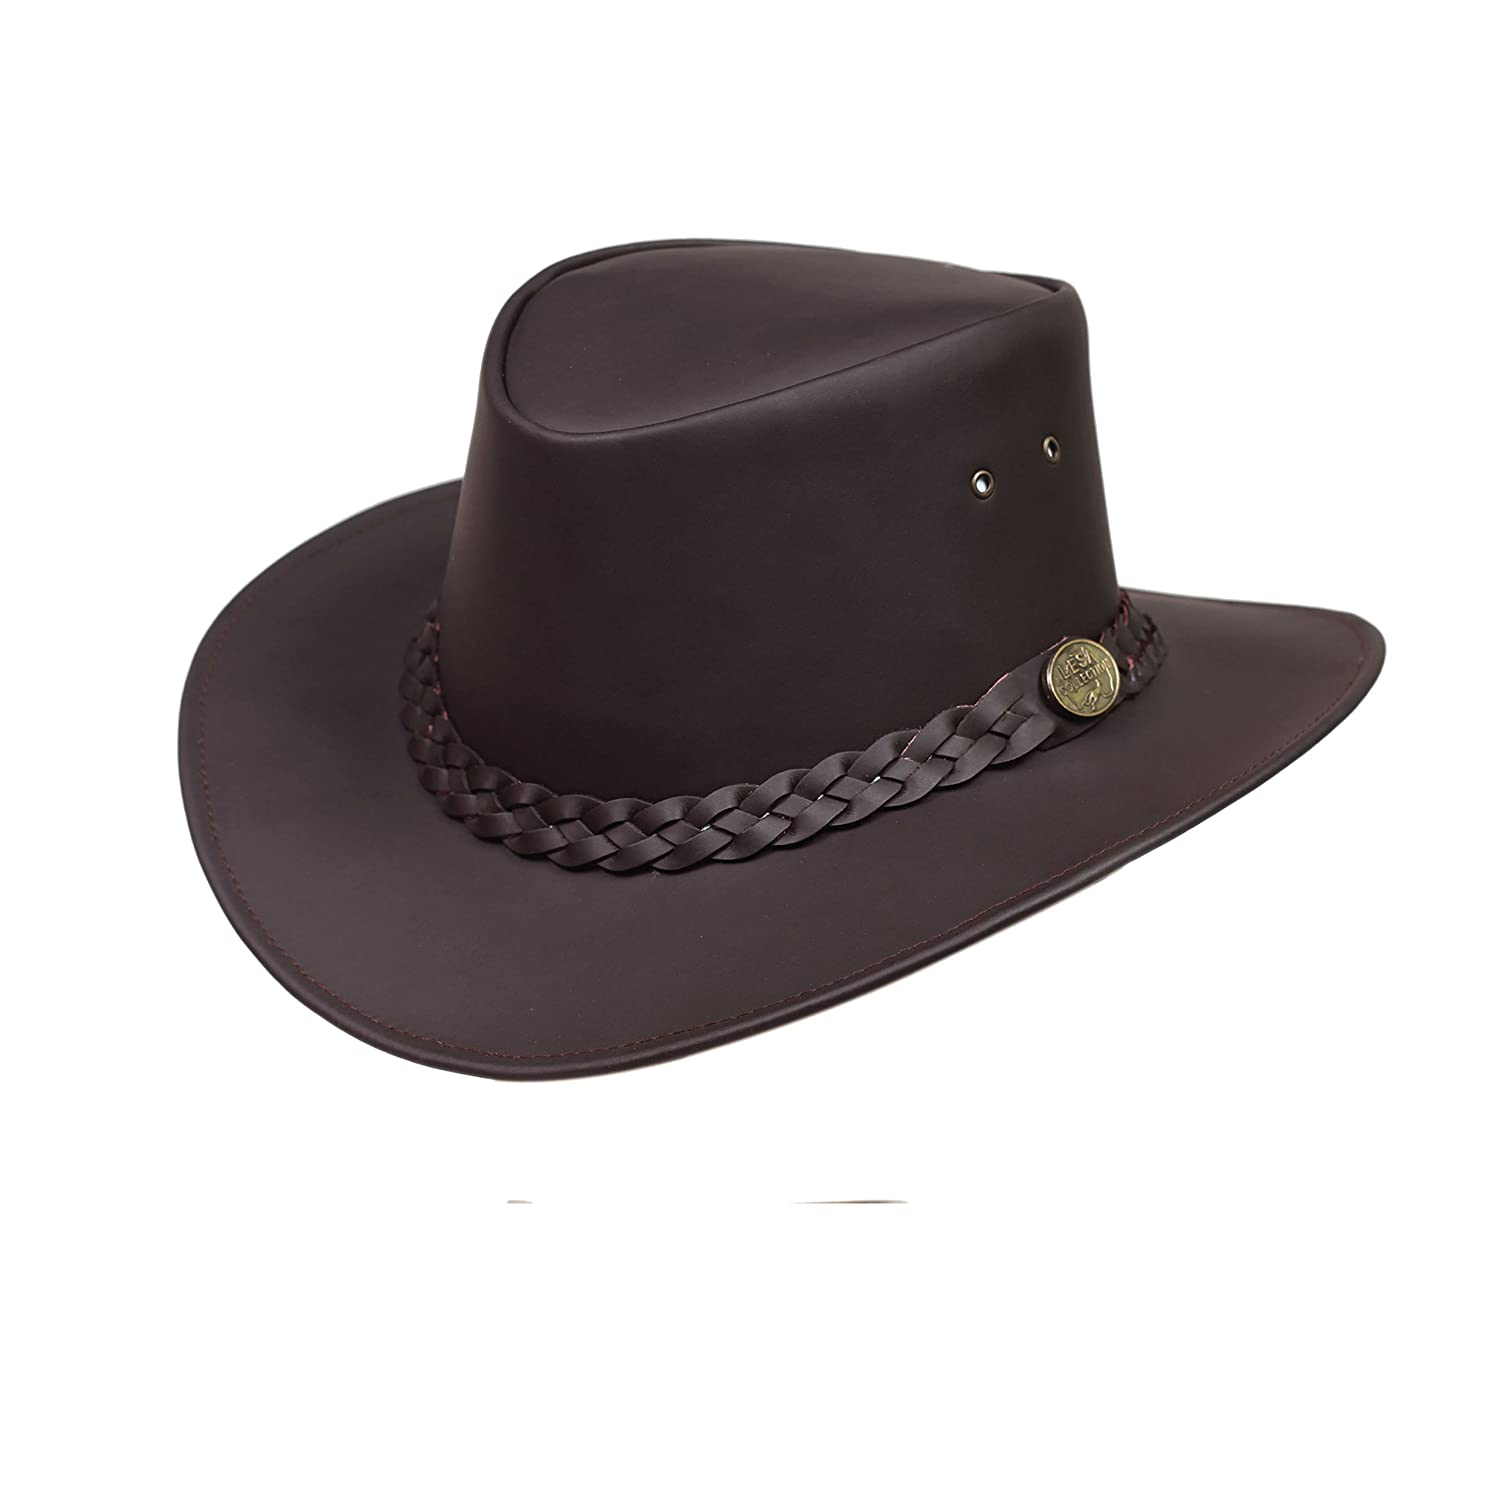 Lesa Collection Australian Style Leather Outback Bush Hat Mens Womens Brown/Black